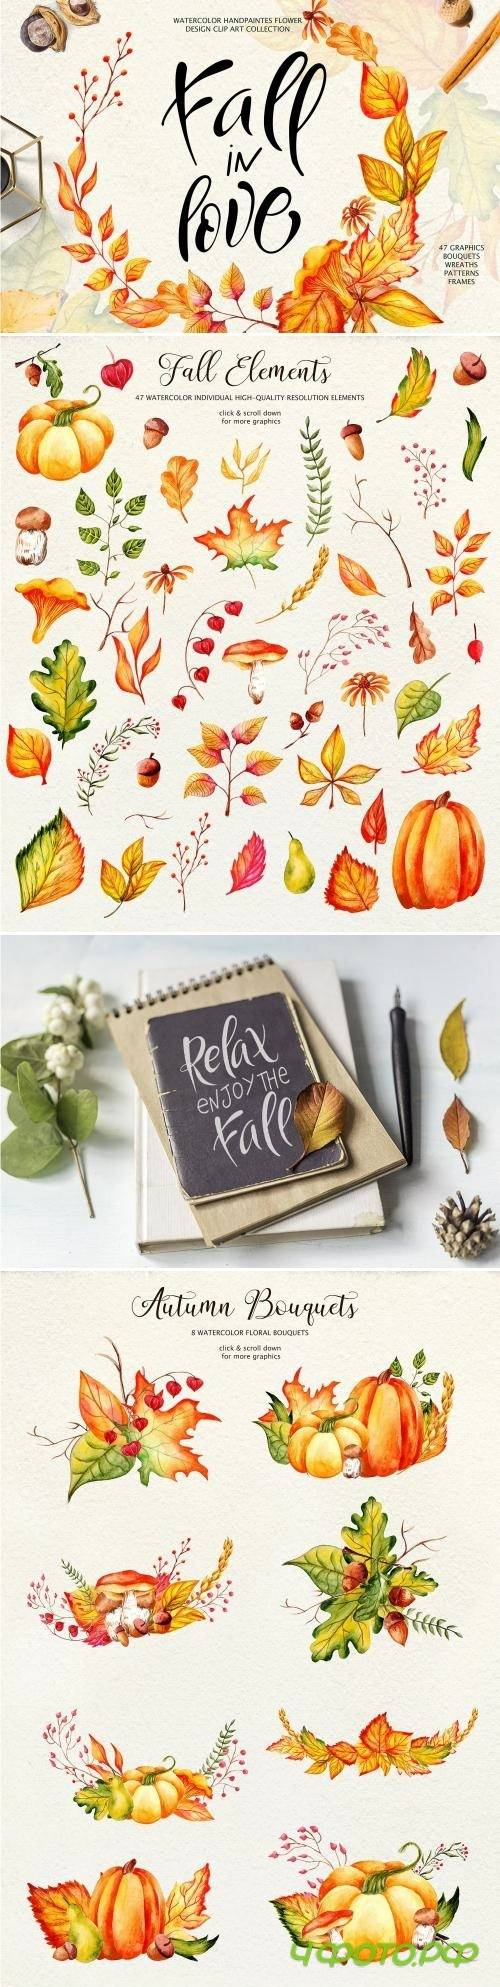 Fall in Love - Watercolor clipart - 2839334